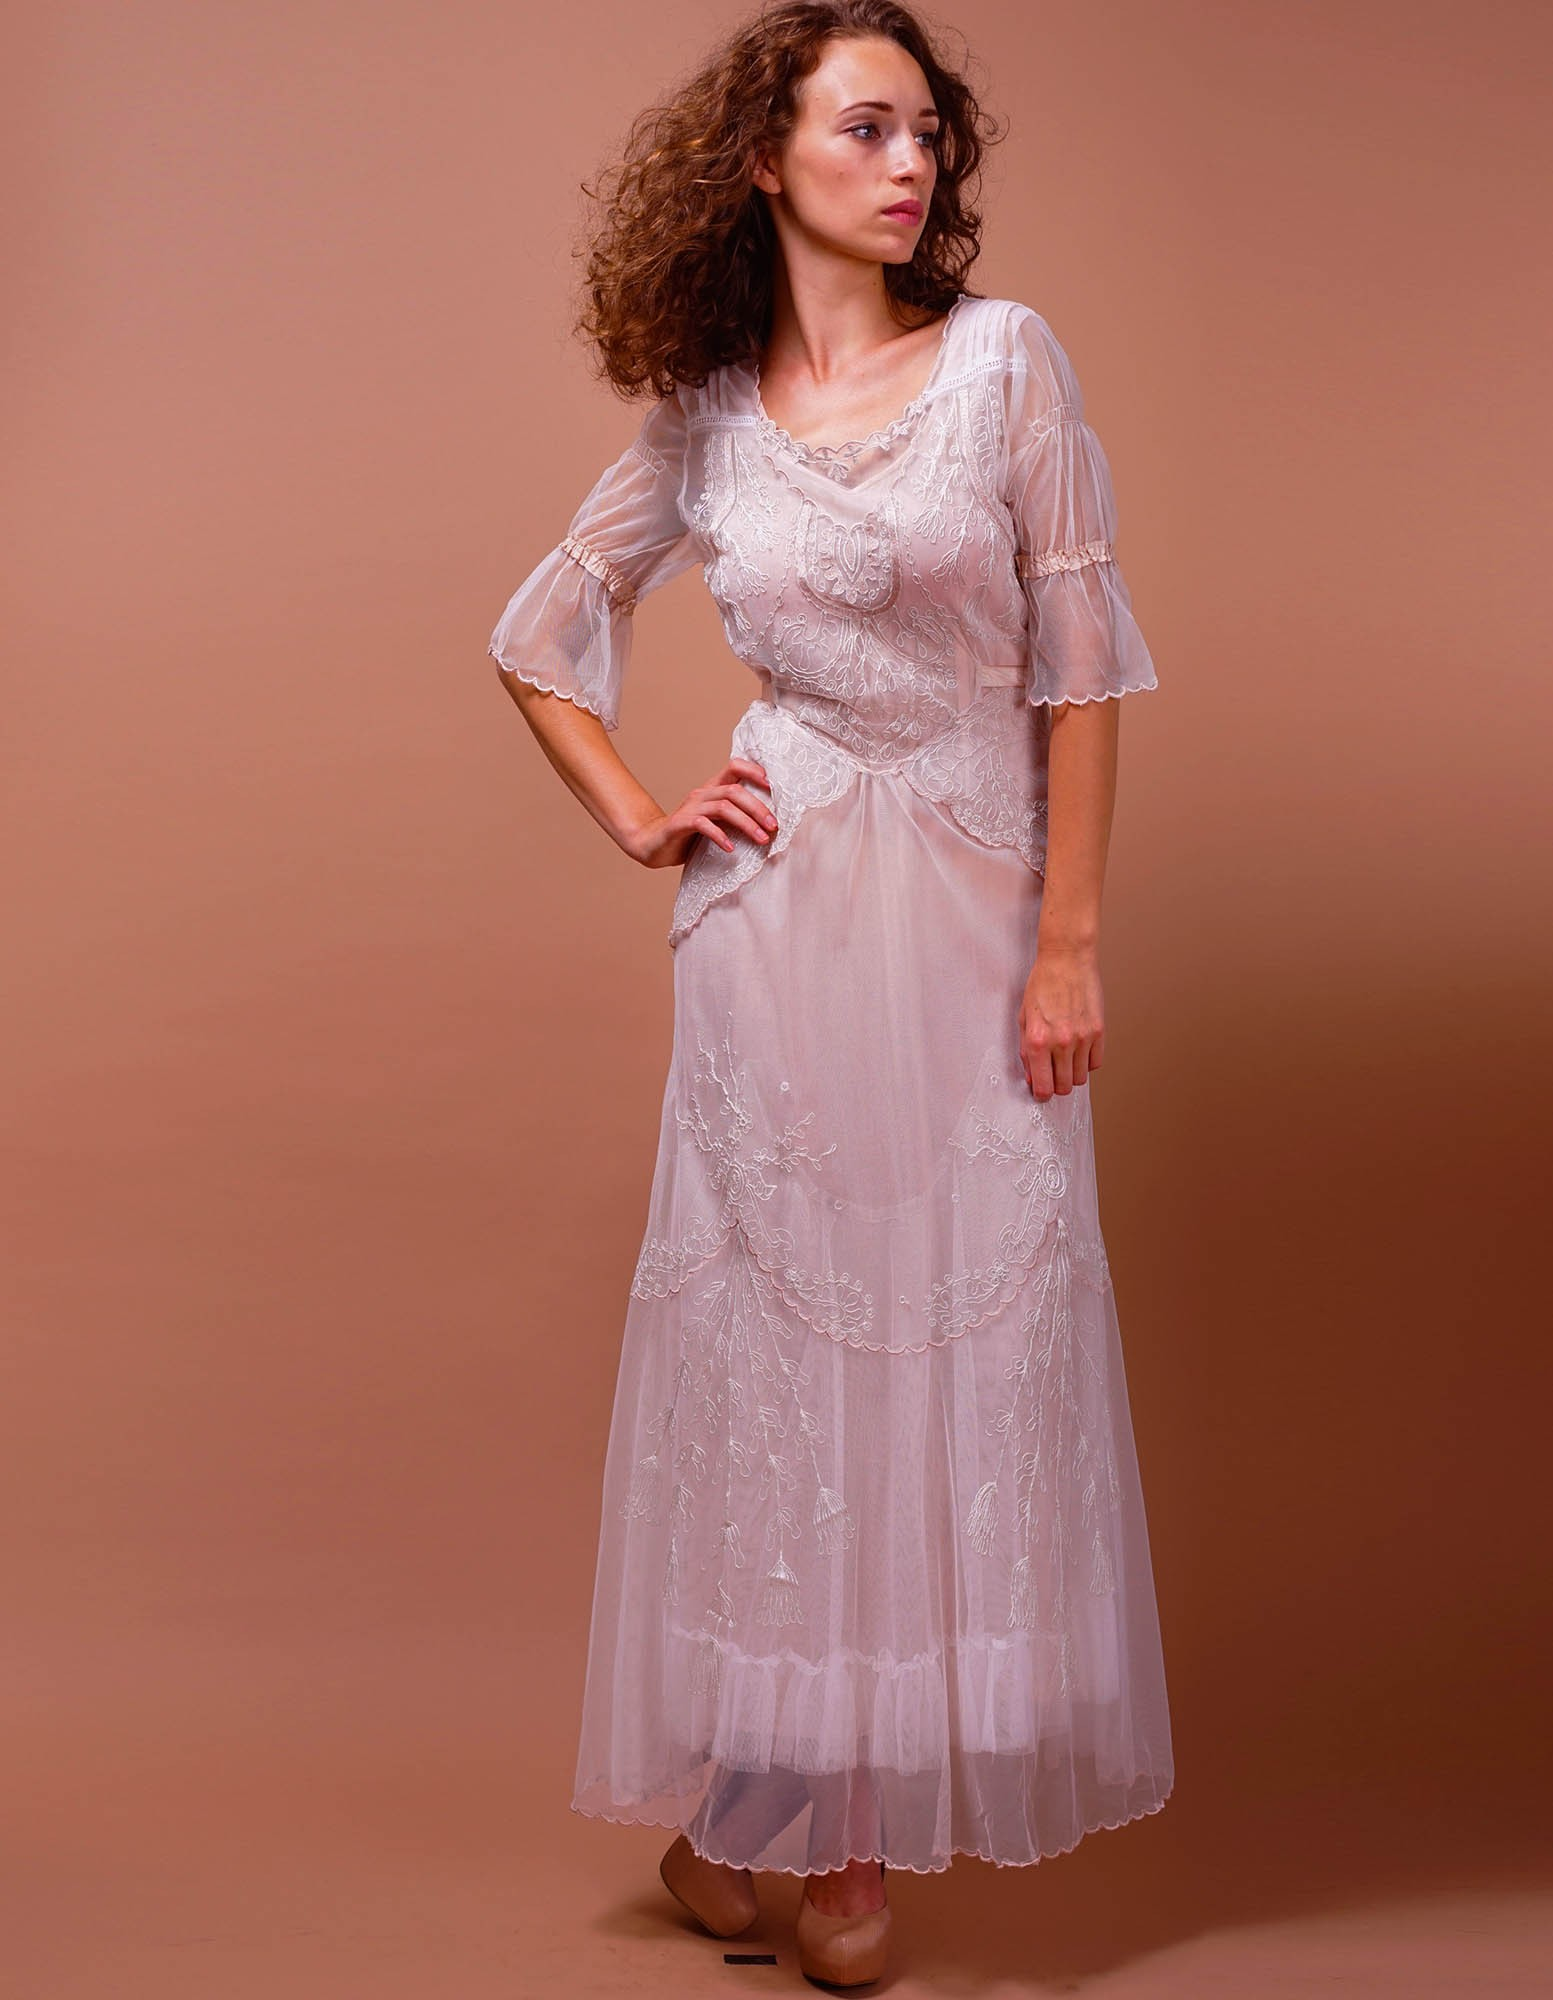 Edwardian Vintage Inspired Wedding Dress in Ivory-Blush by Nataya